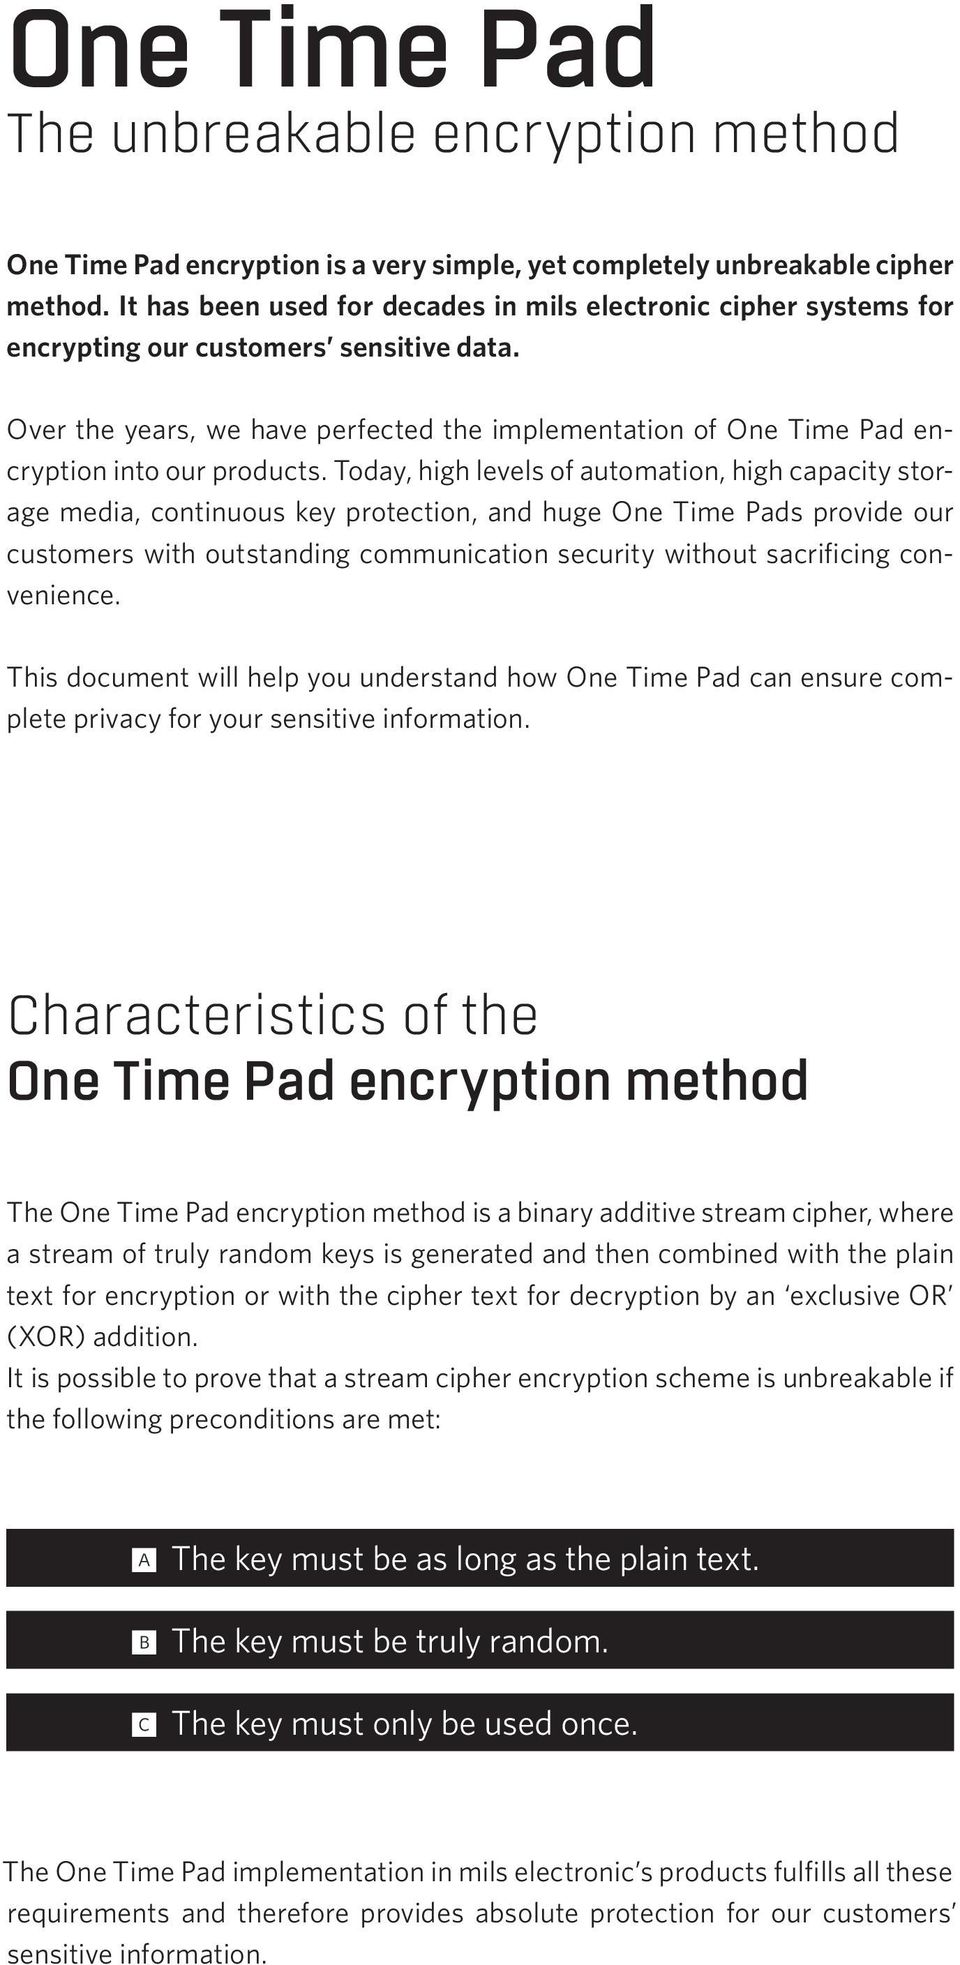 Over the years, we have perfected the implementation of One Time Pad encryption into our products.